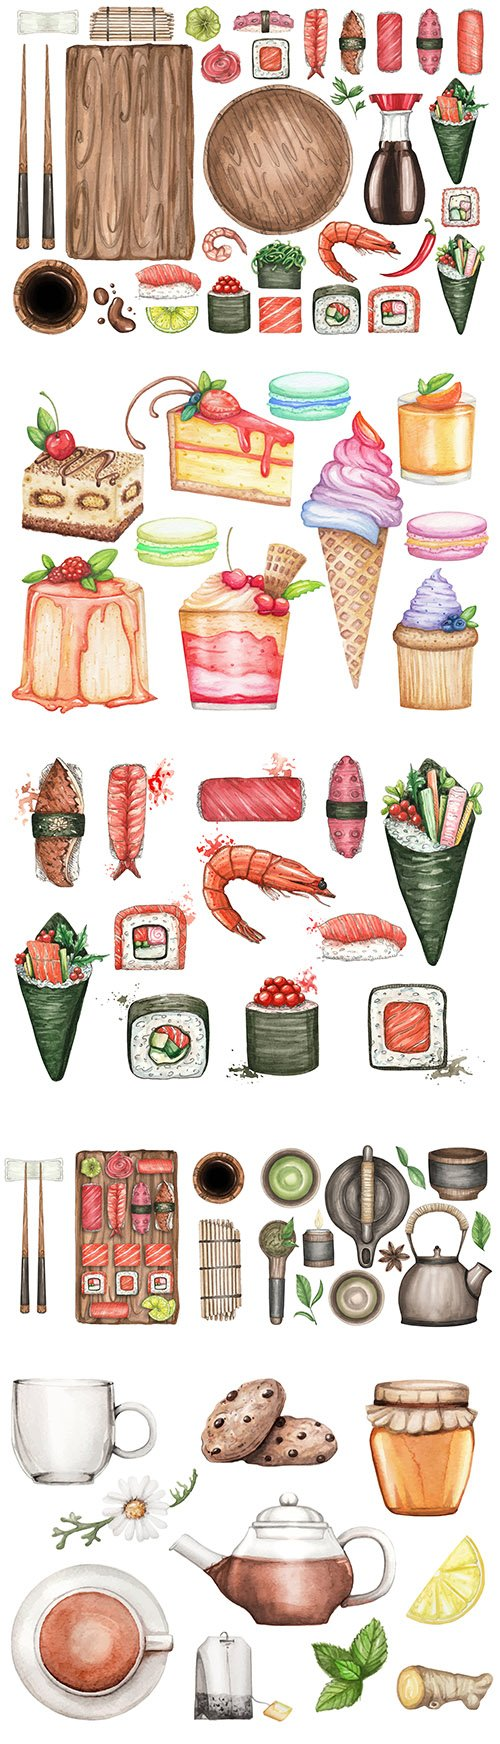 Sushi and tea dessert watercolor set illustrations